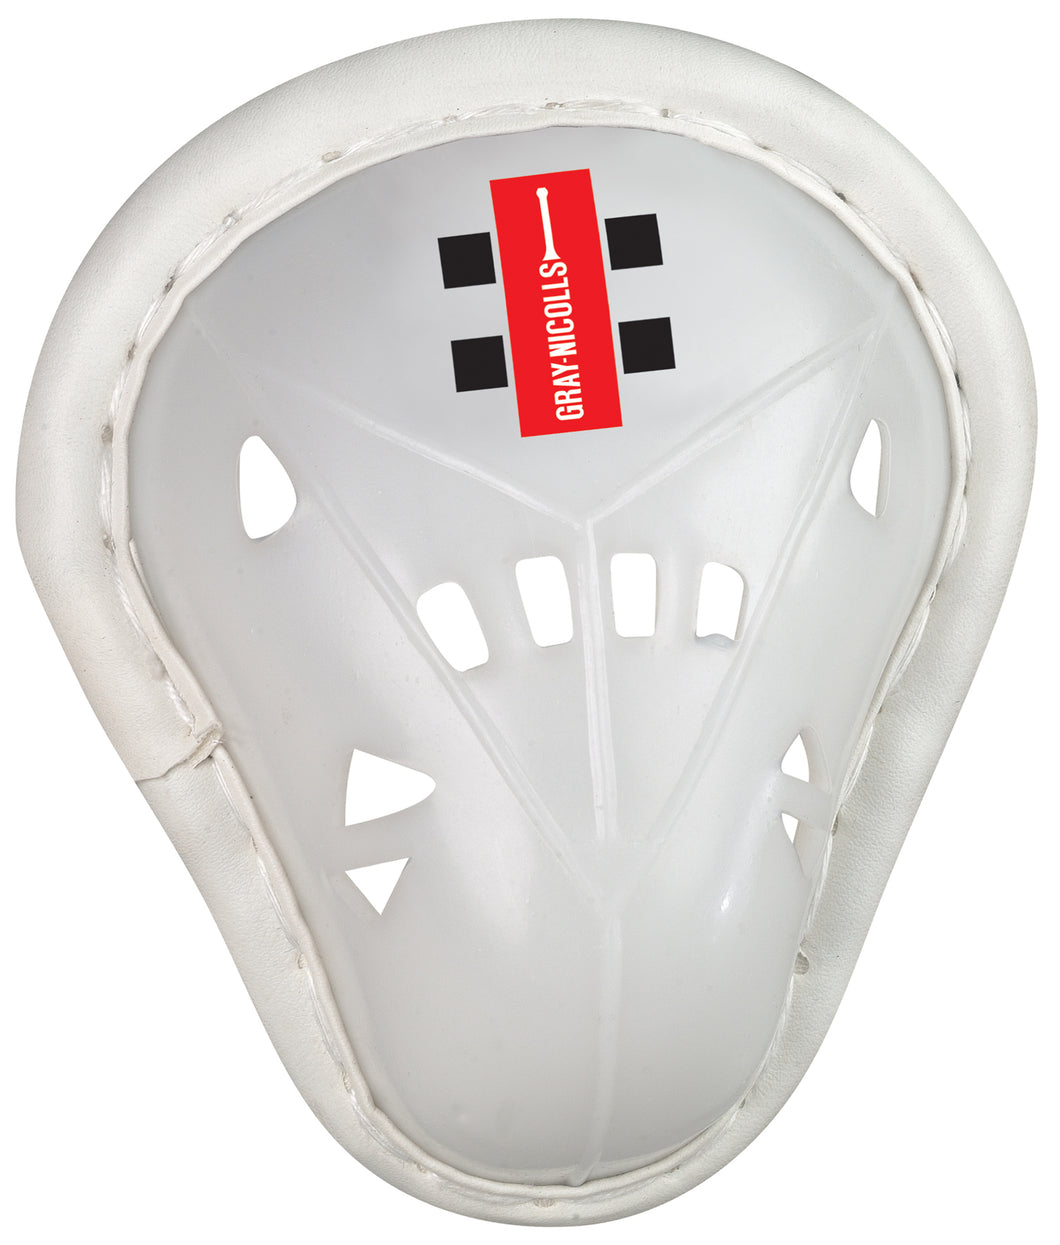 Gray Nicolls Cricket Abdo Guard - Sportologyonline - Gray Nicolls